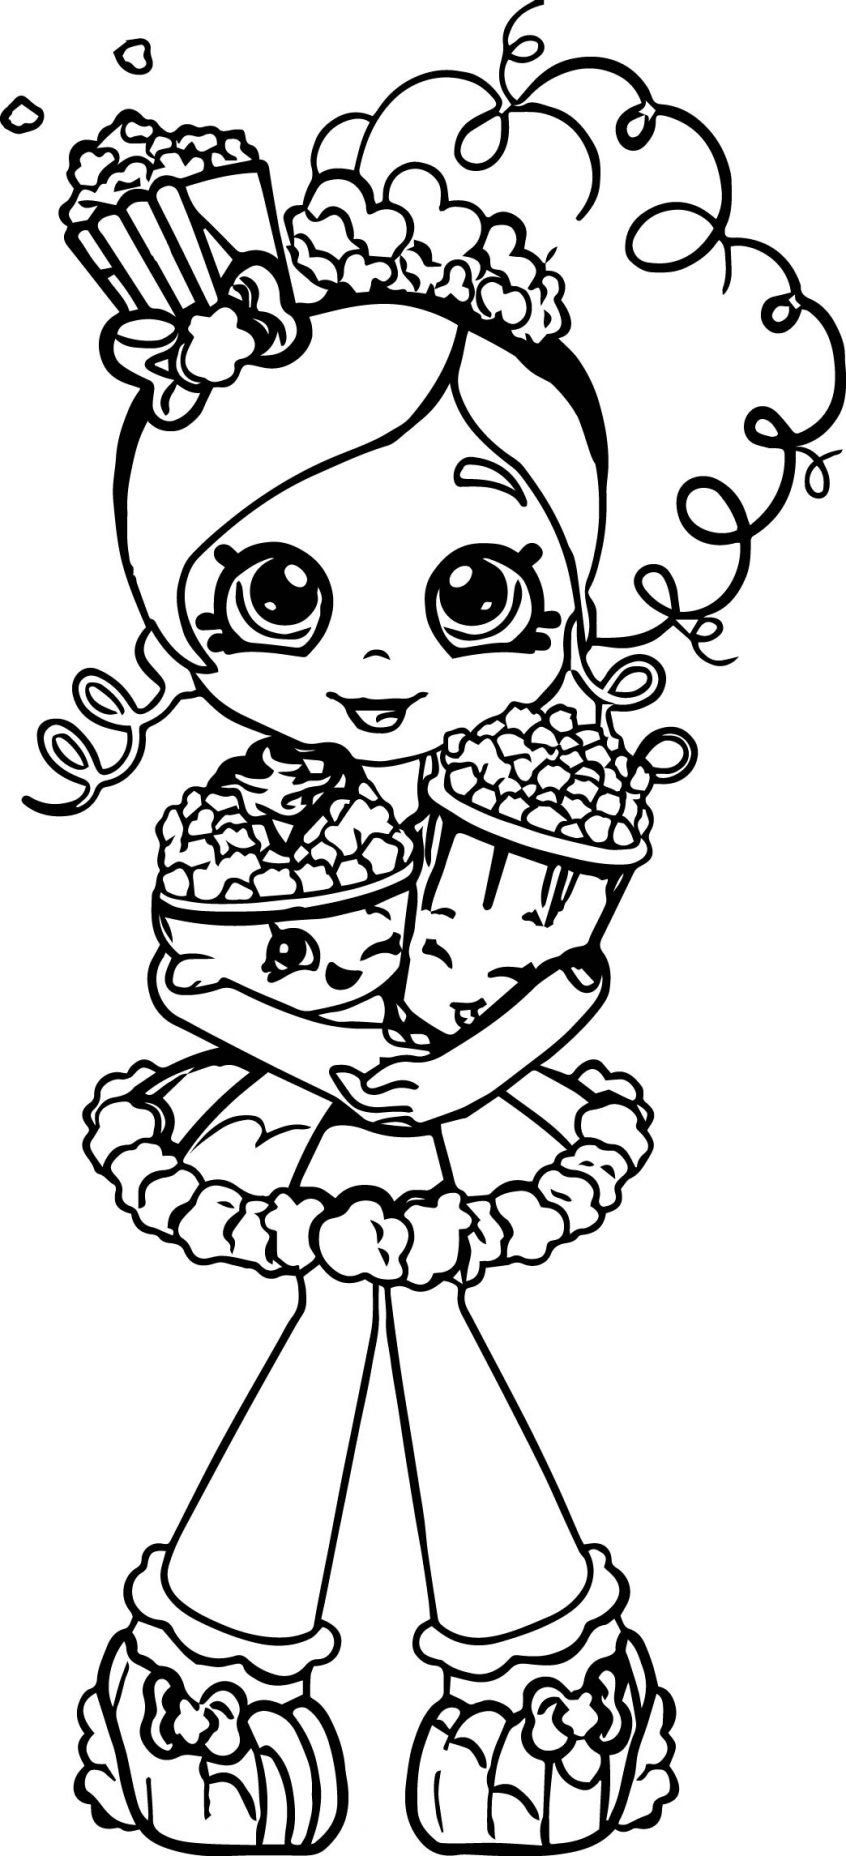 Free Printable Coloring Pages Shopkins Coloring Kins Dolls Coloring Pages Doll Printable Shopkin Coloring Pages Coloring Pages For Girls Cartoon Coloring Pages